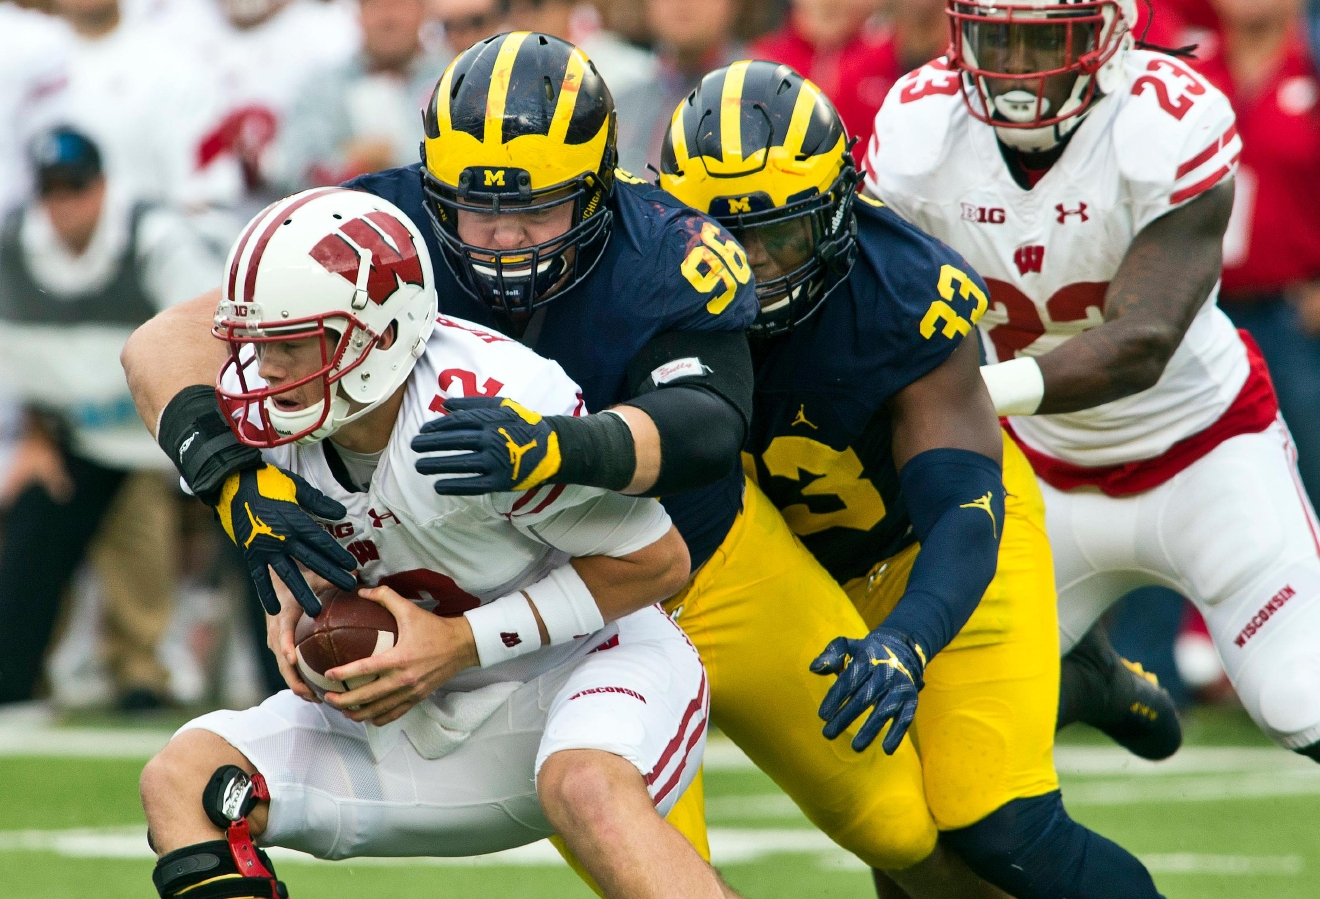 Wisconsin quarterback Alex Hornibrook (12) is sacked by Michigan defensive tackle Ryan Glasgow (96) and defensive end Taco Charlton (33) in the second quarter of an NCAA college football game at Michigan Stadium in Ann Arbor, Mich., Saturday, Oct. 1, 2016. (AP Photo/Tony Ding)